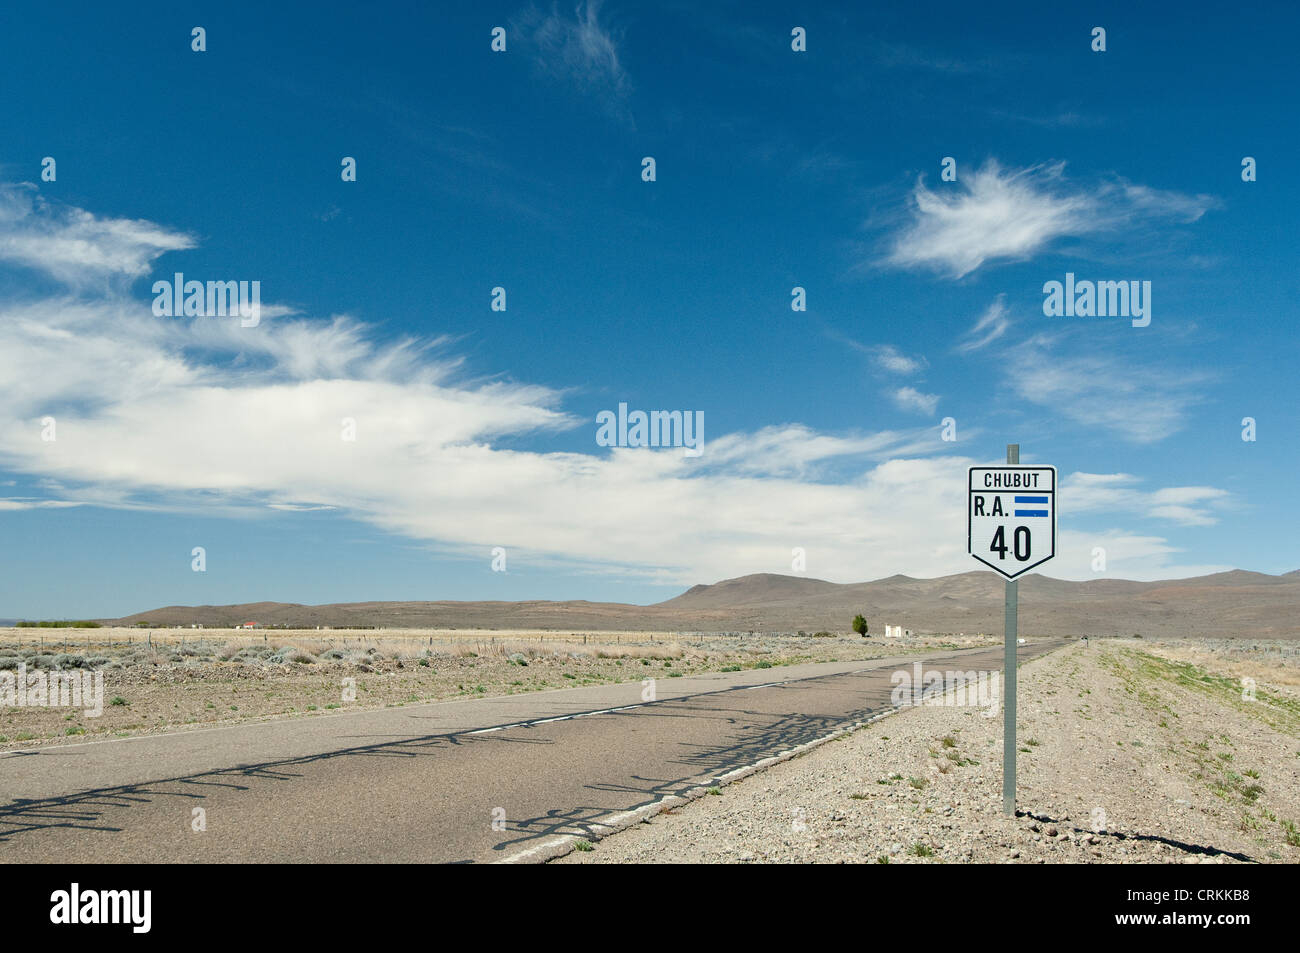 Route 40 road sign Chubat Province Patagonian steppe Argentina South America - Stock Image